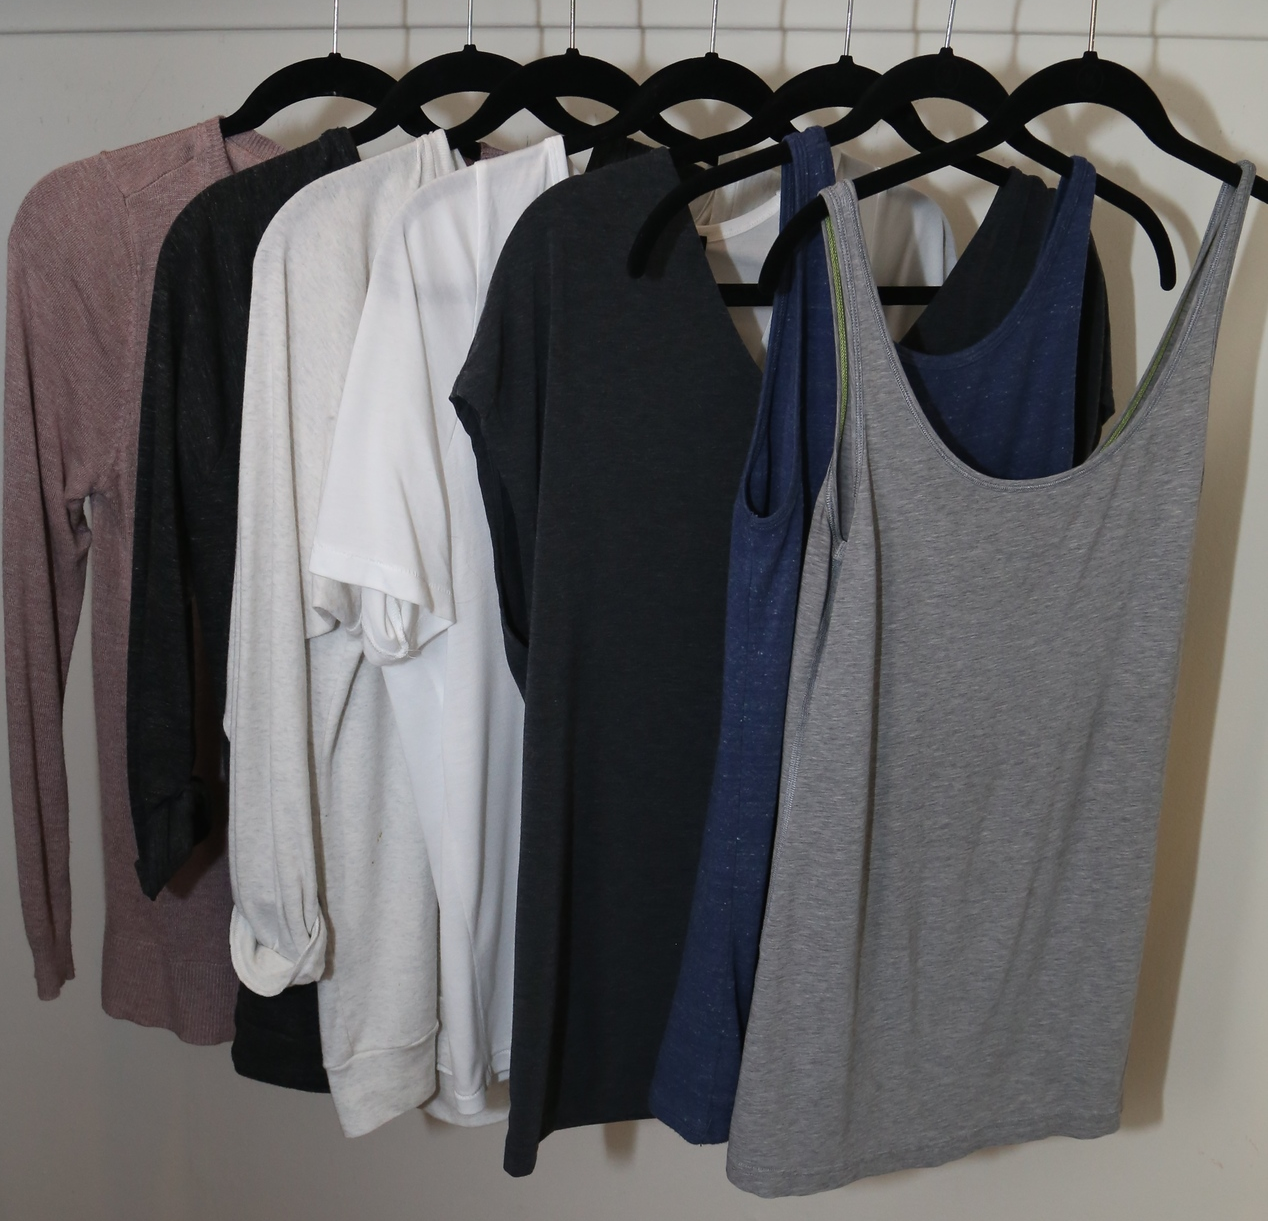 Layering pieces: lightweight sweaters, 3/4 sleeves, tees and tanks.